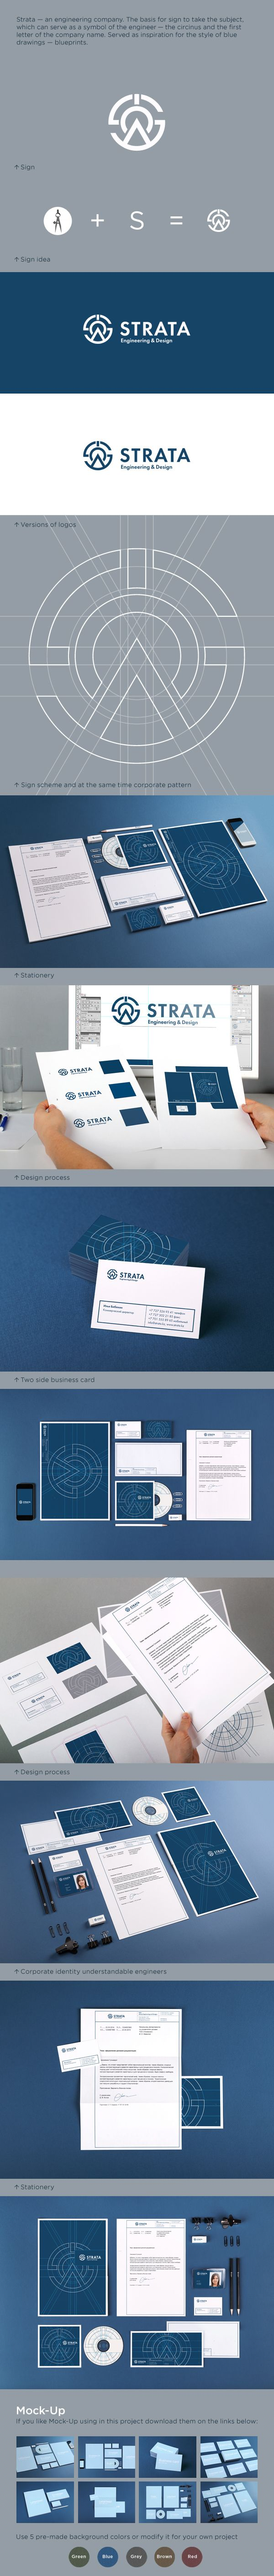 Strata. Logo & corporate identity on Behance